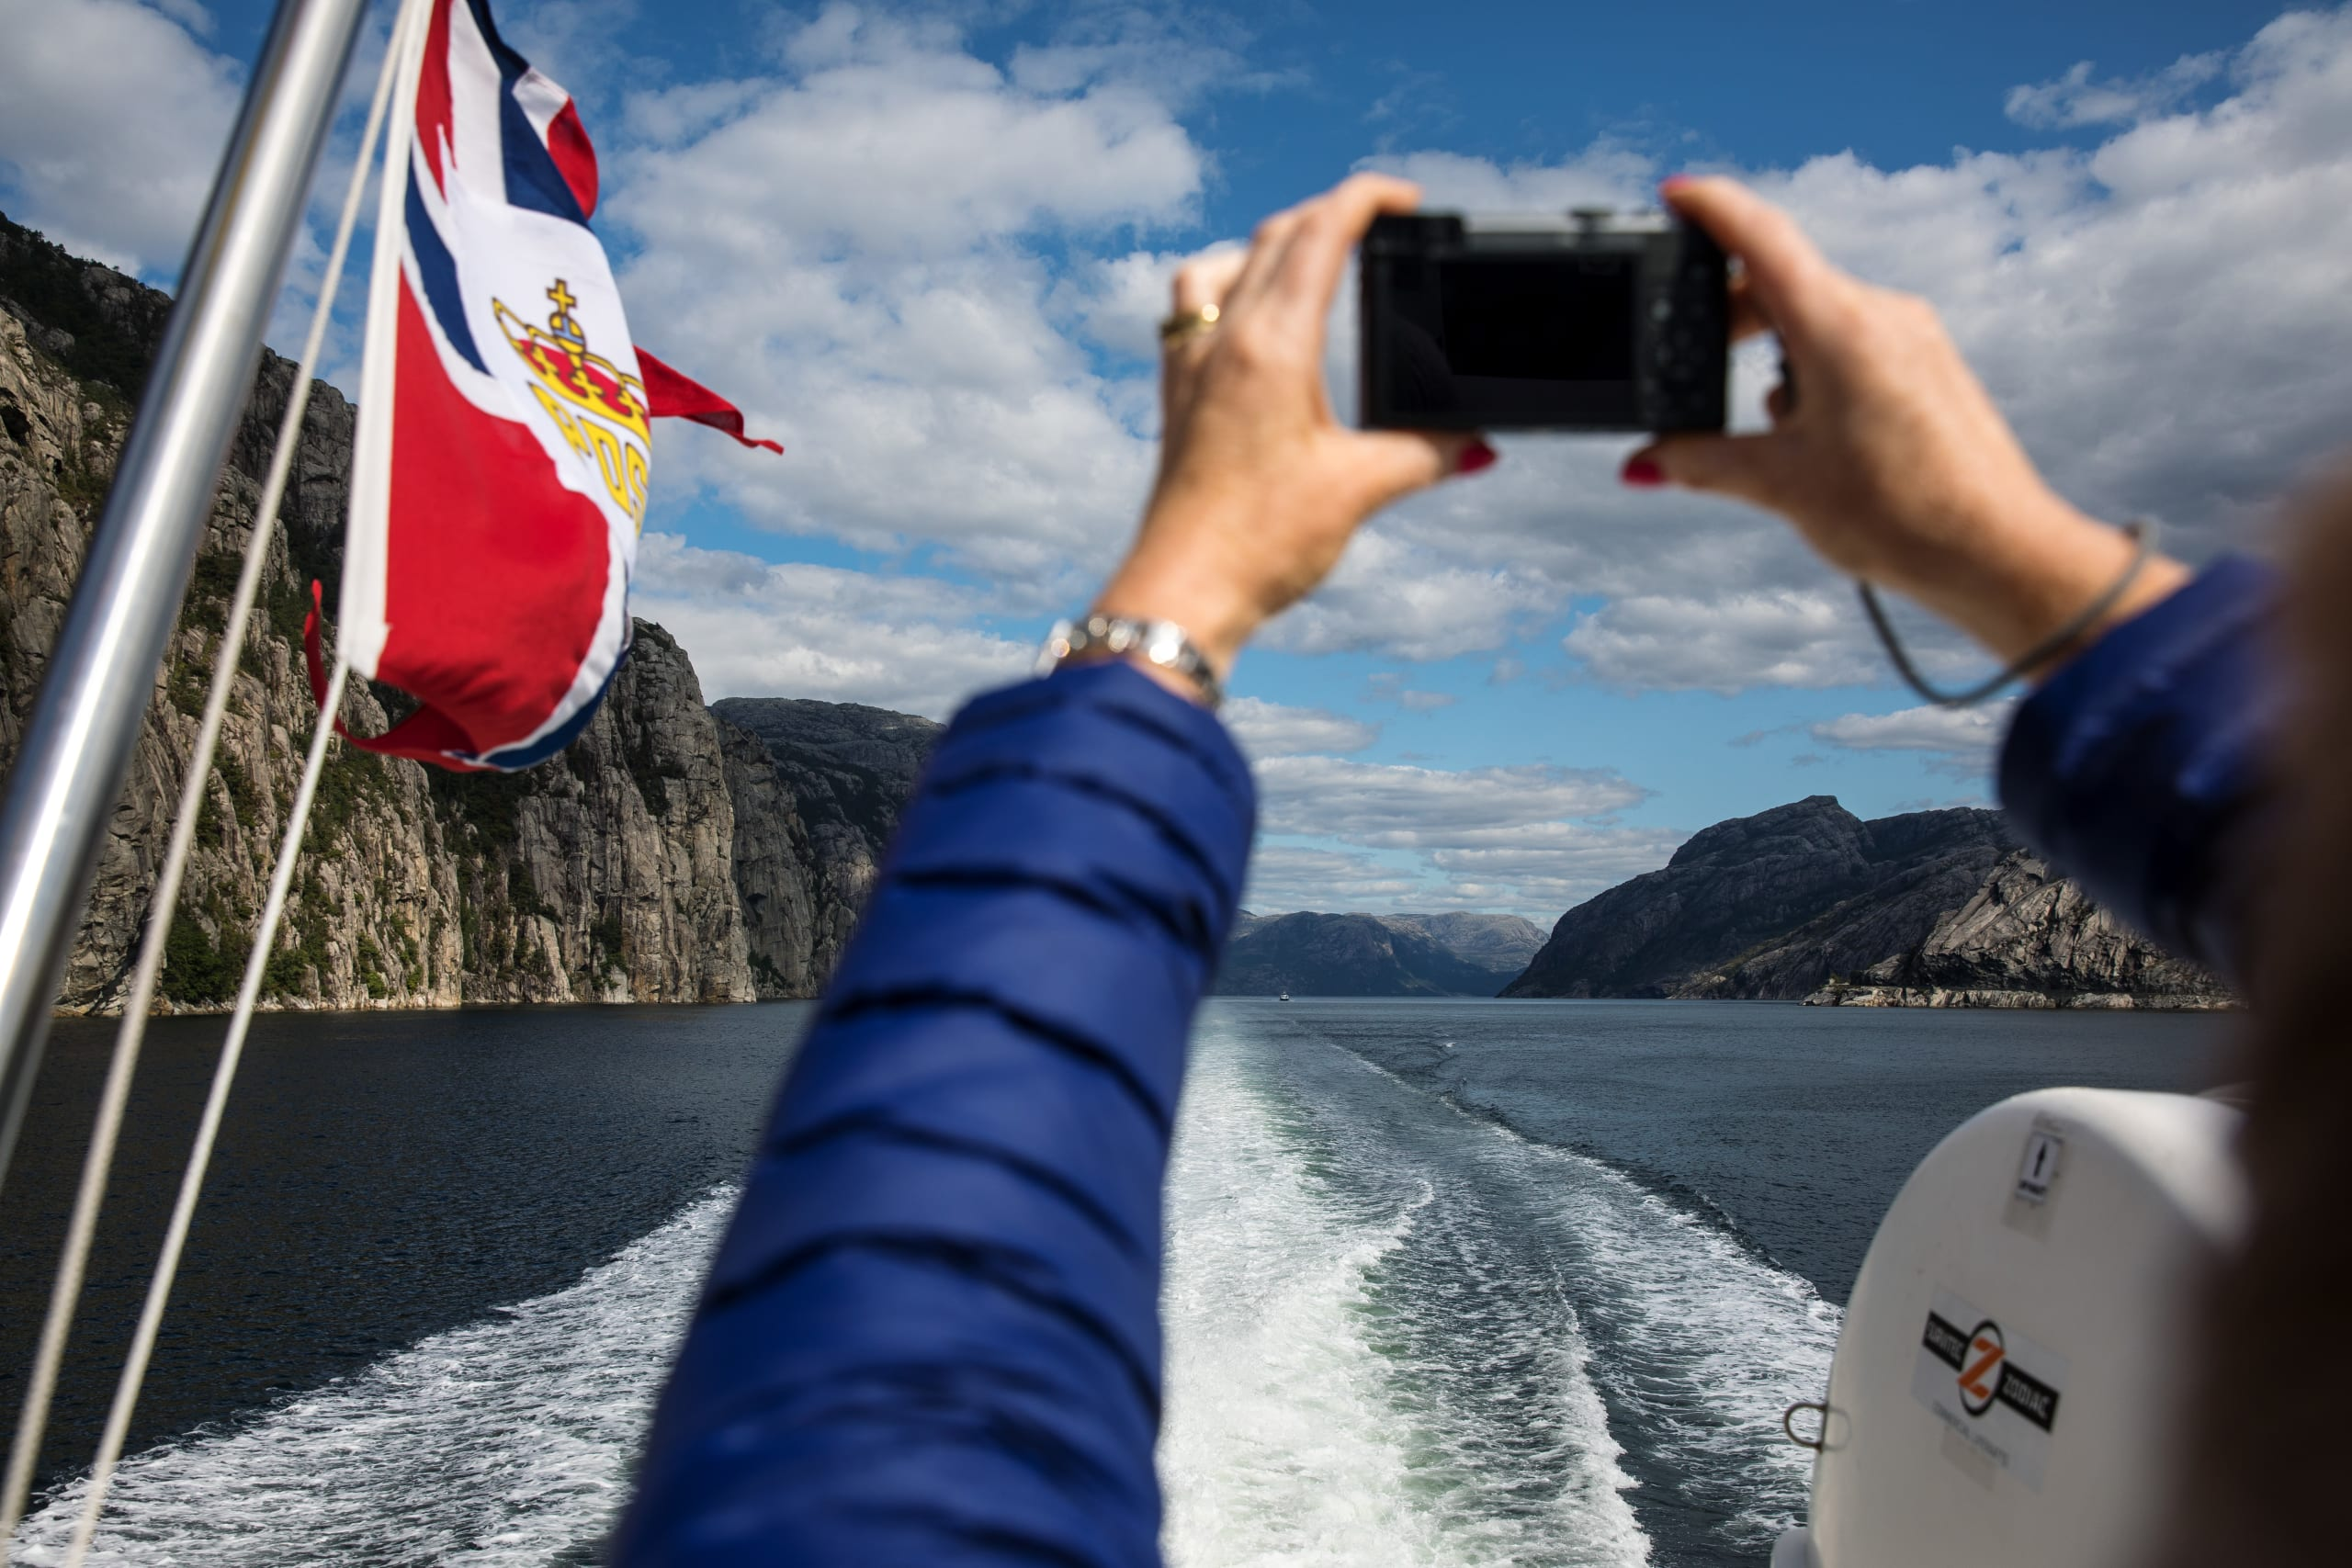 Taking phot of the Lysefjord